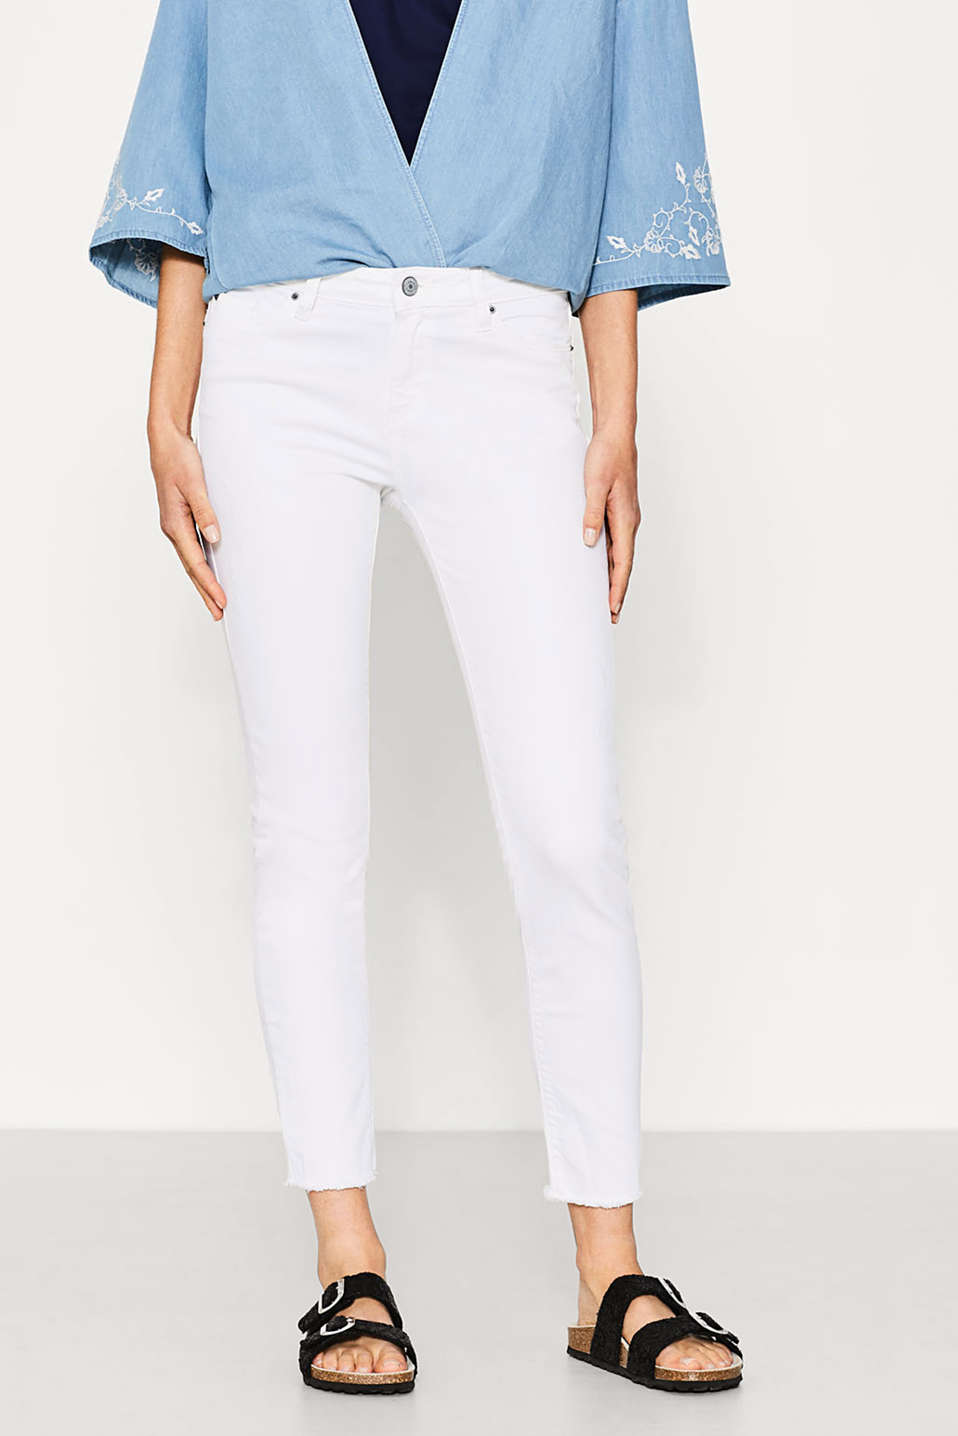 White stretch jeans with vintage effects